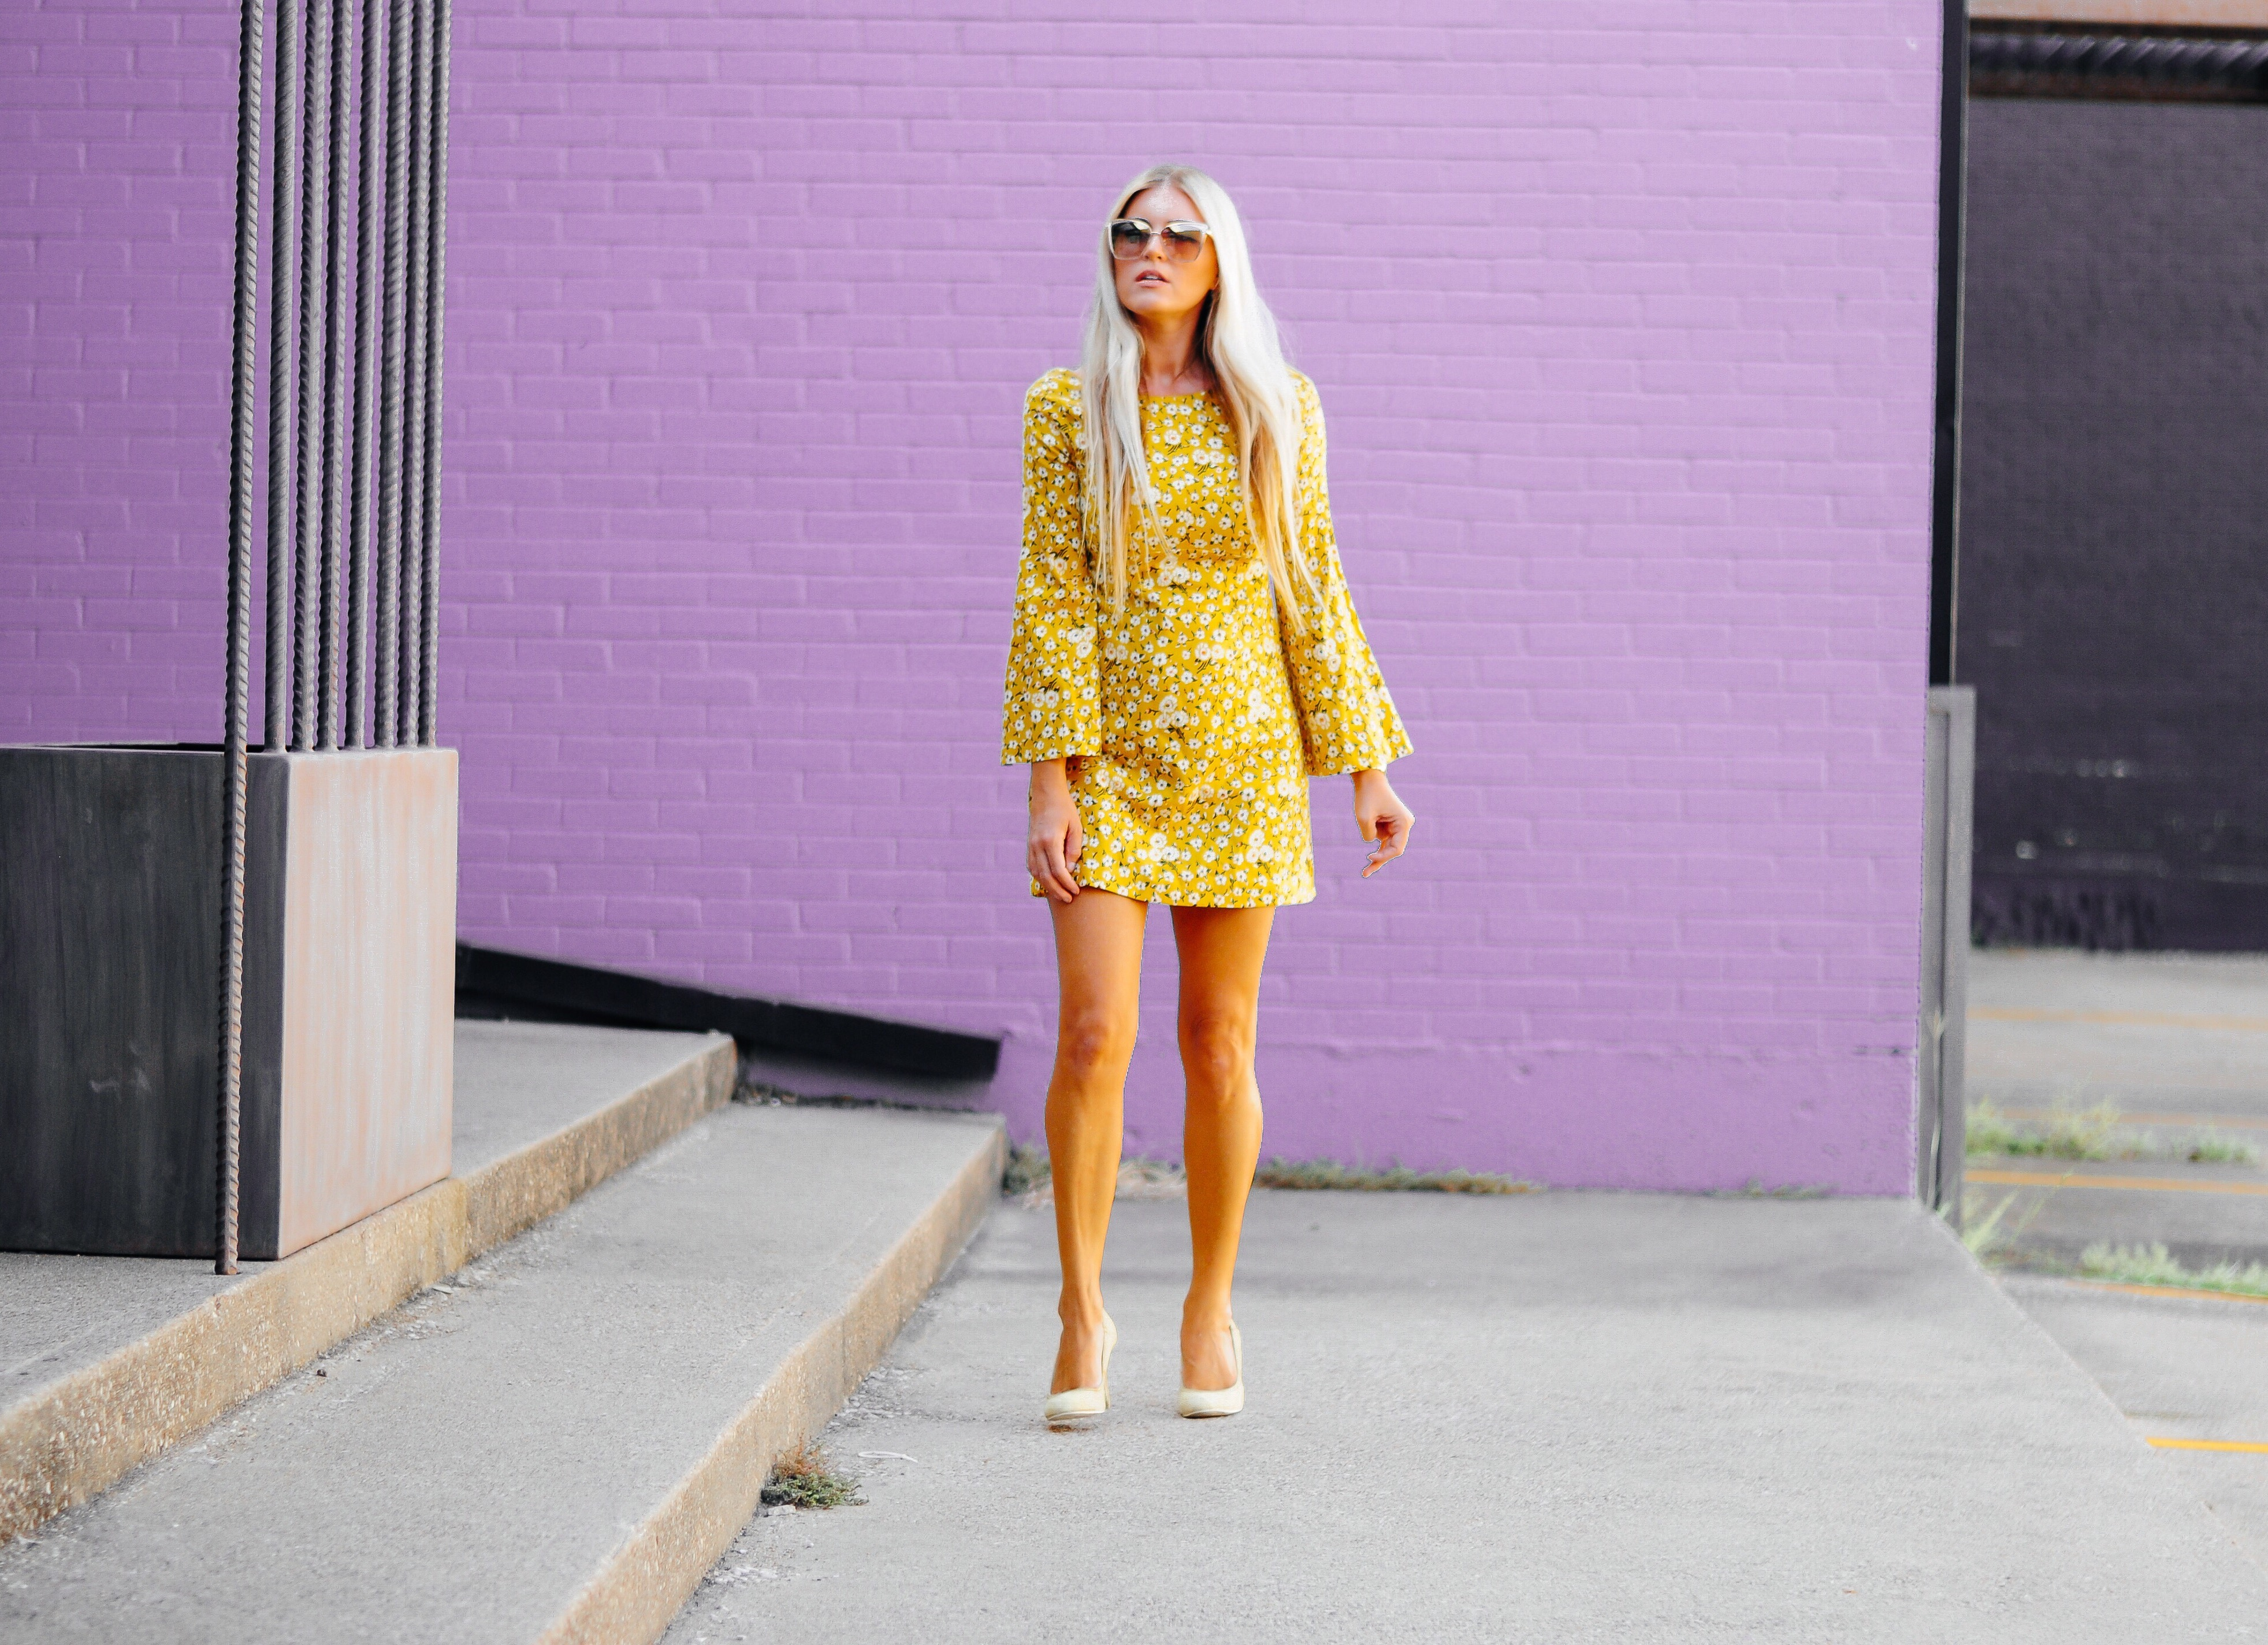 Stephany Bowman wearing Yellow ZARA dress, Diesel high heels, and Gold sunglasses from DIFF Eyewear